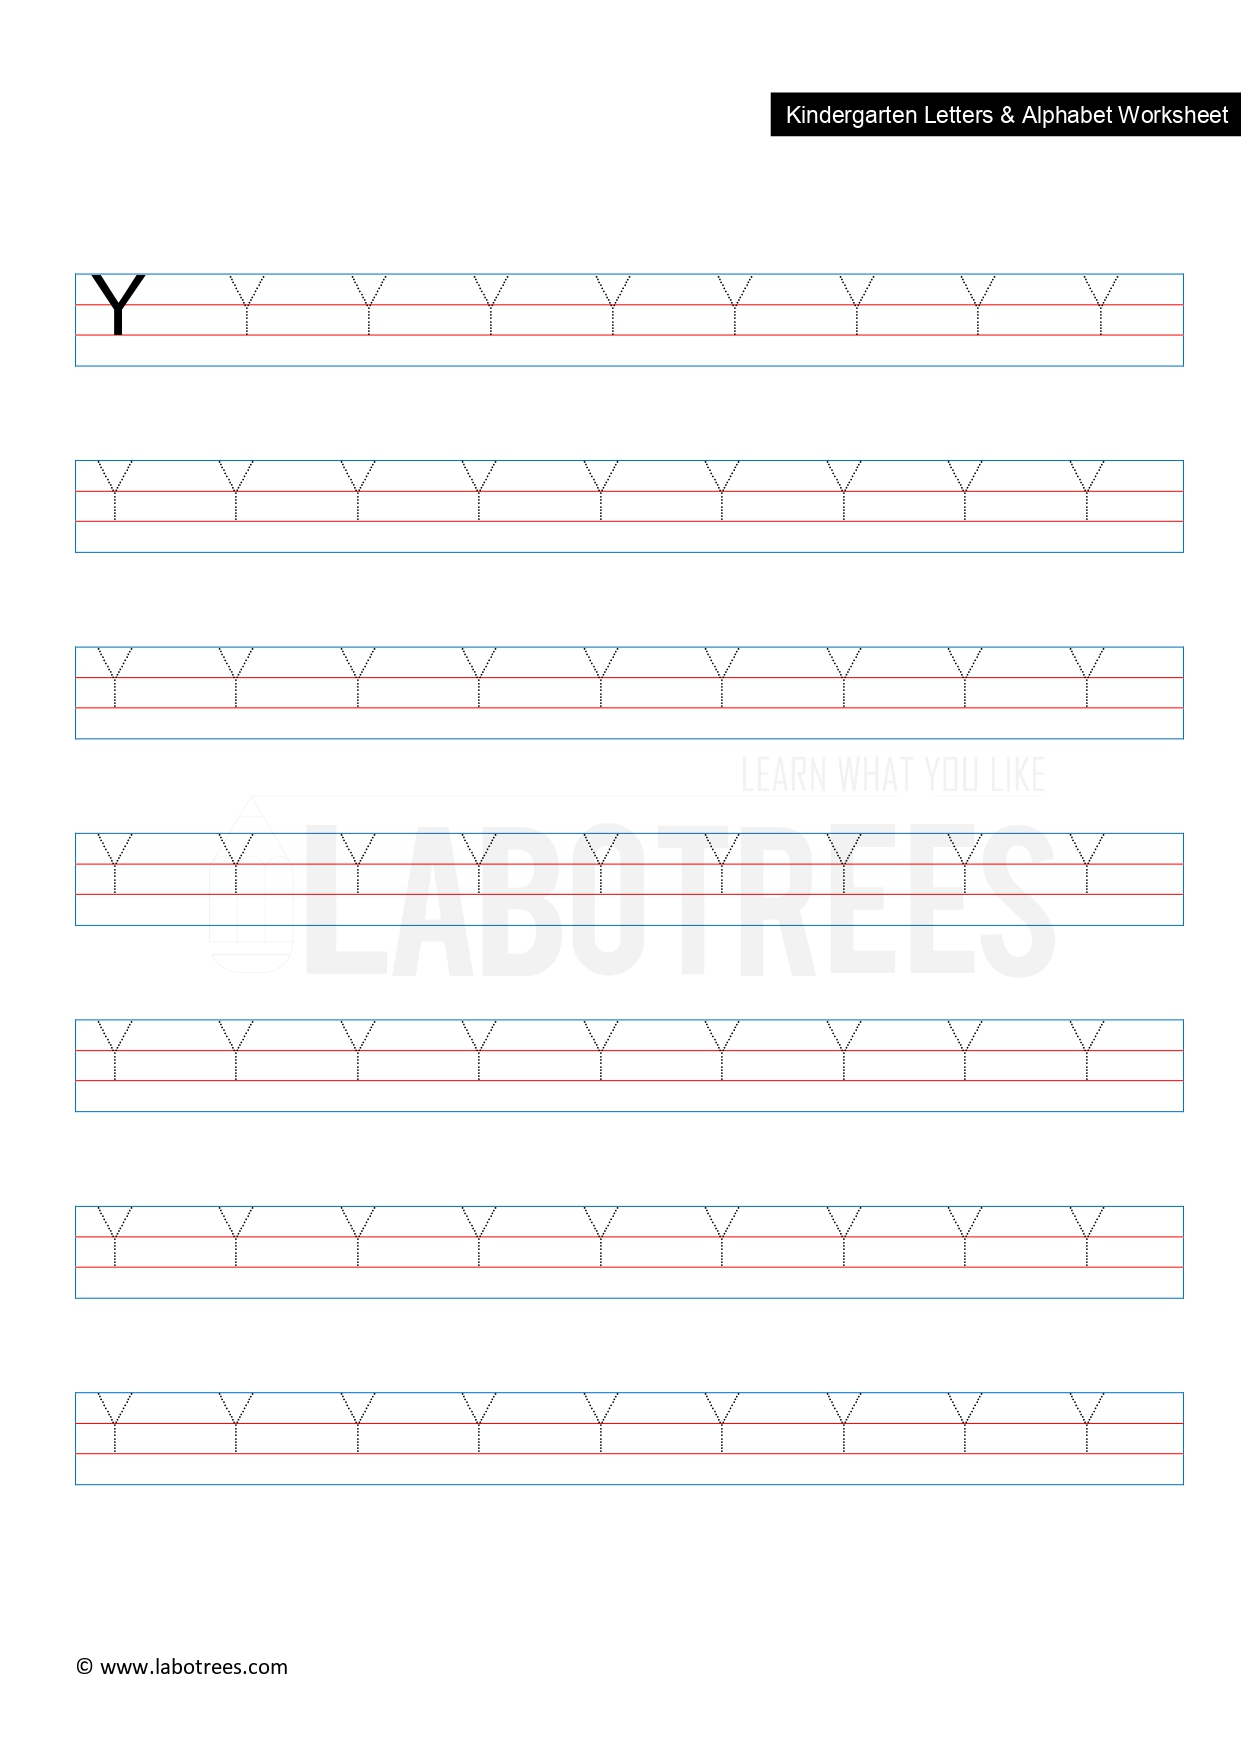 Worksheet Of Letter Y Uppercase Free Download